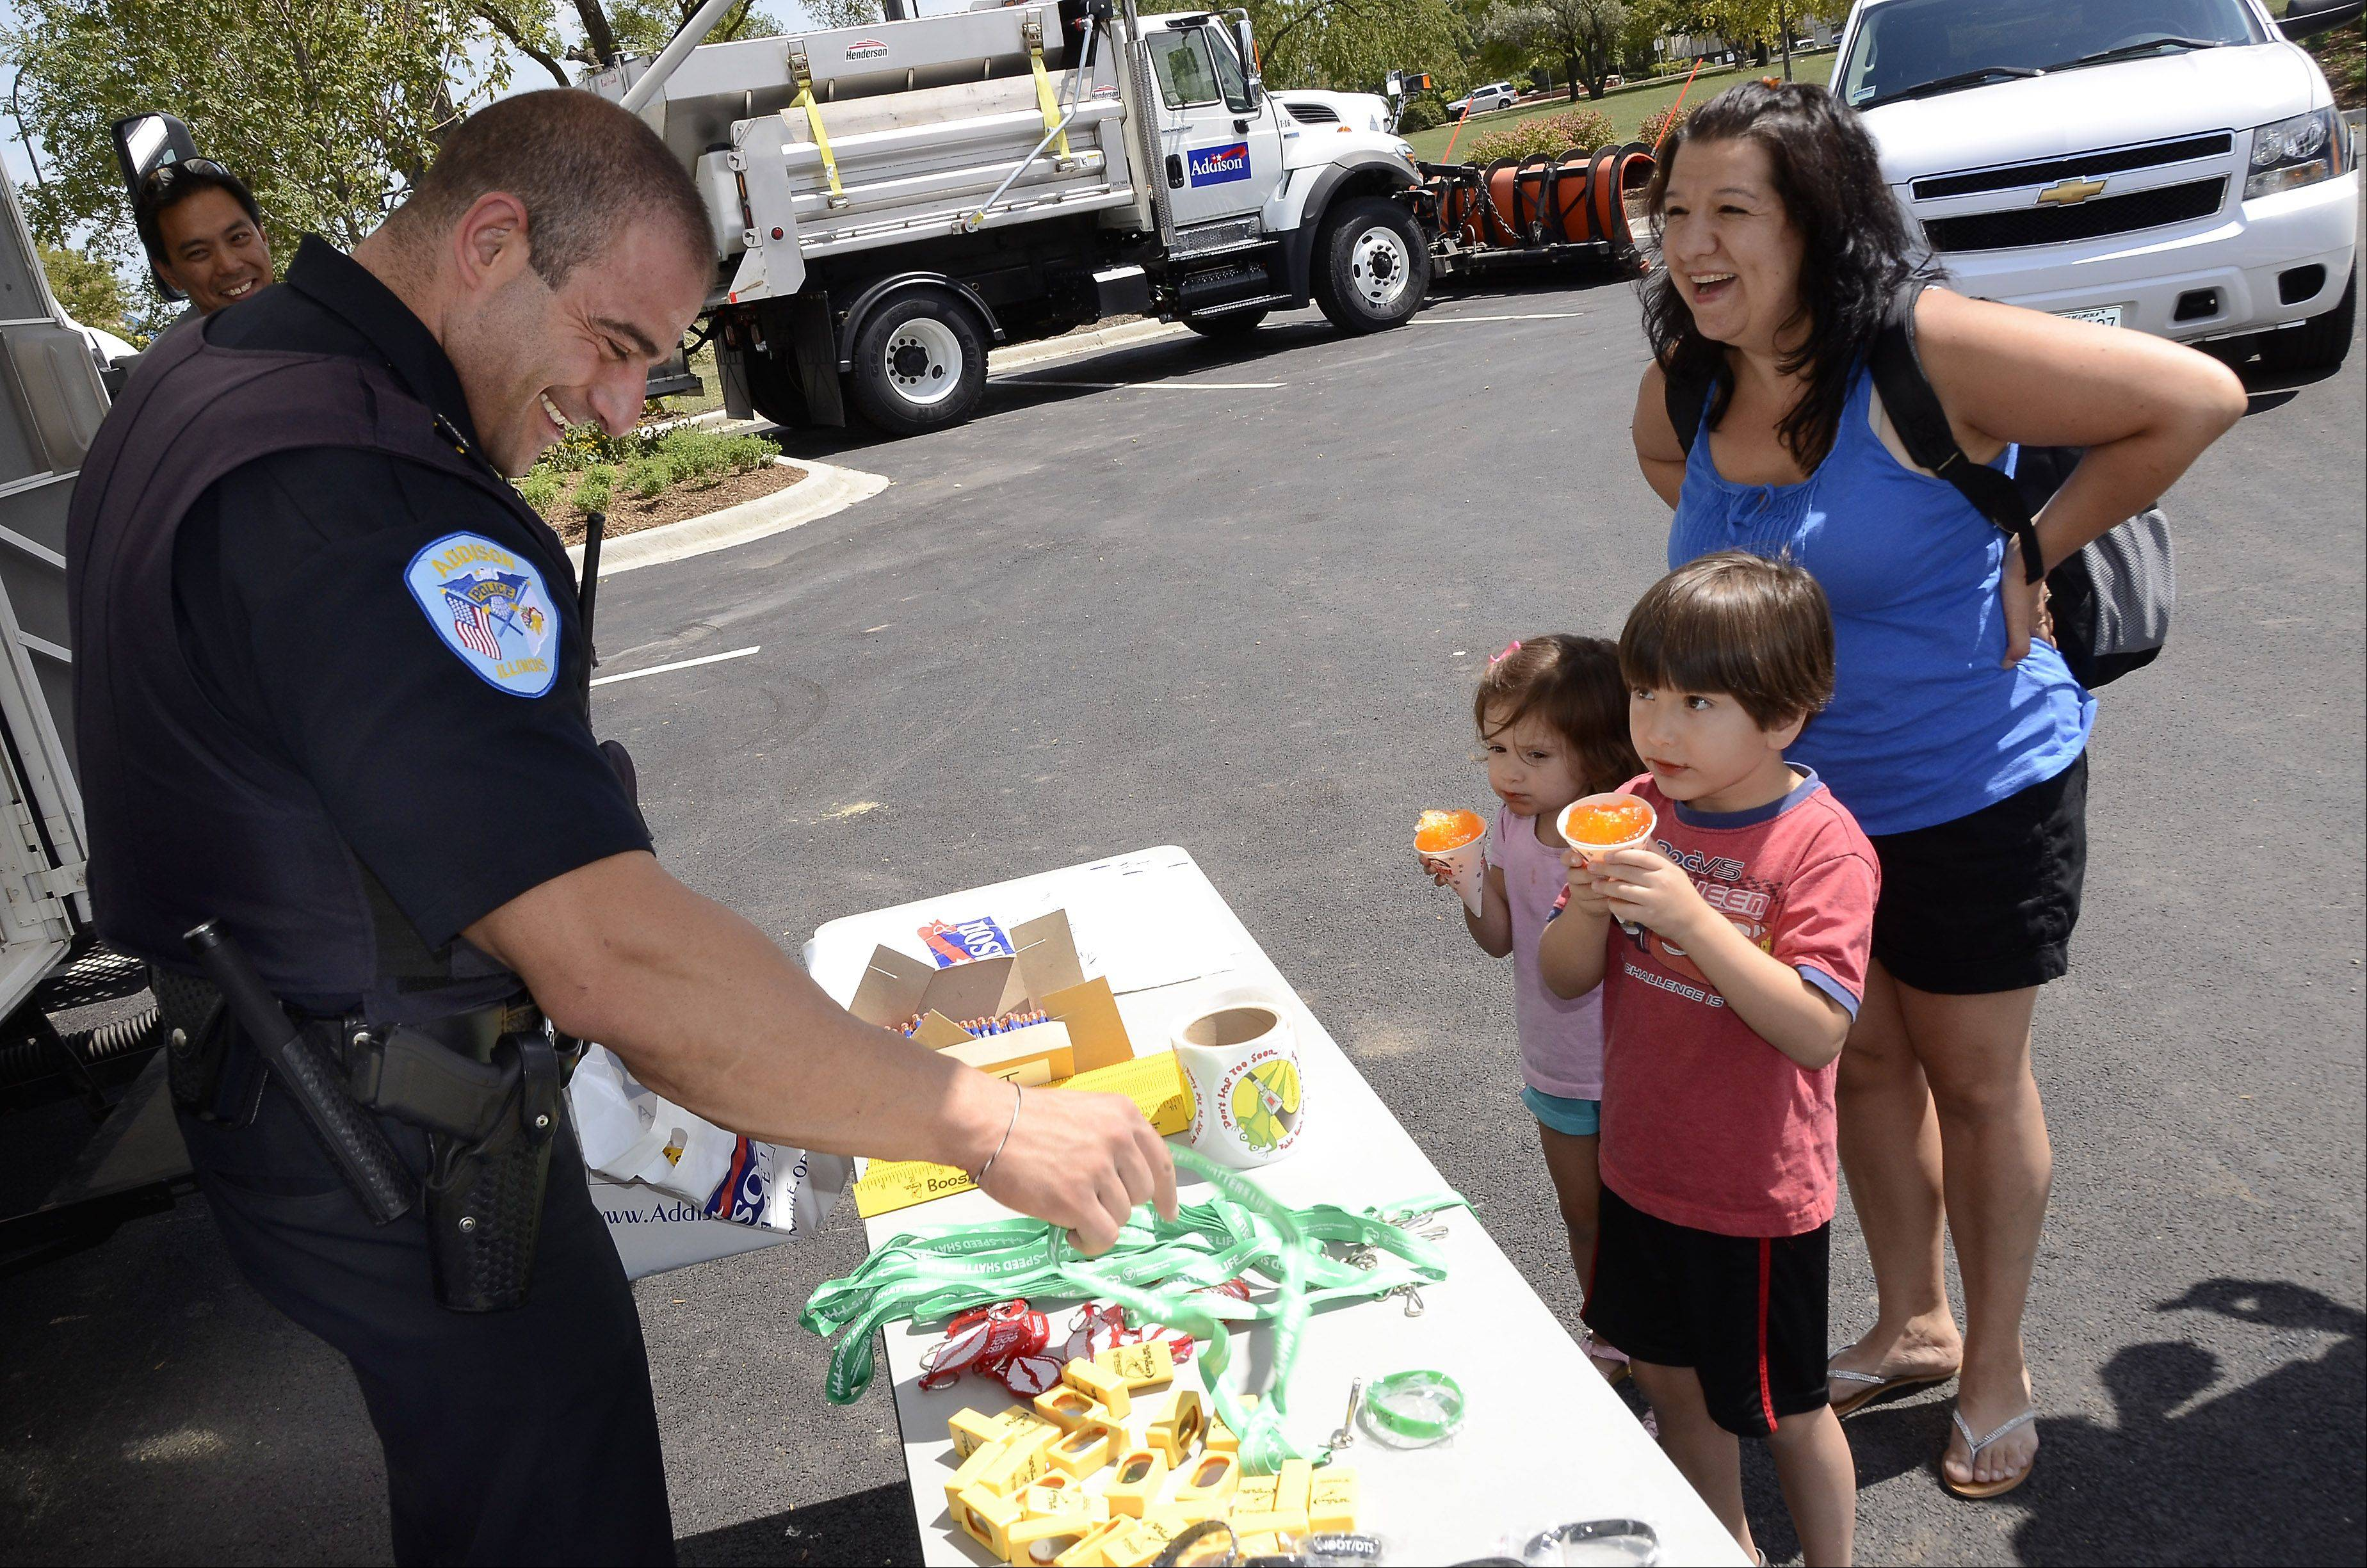 Addison police patrolman Joe Merendino gathers some souvenirs for Mina Alliaj, 3, Masimo Alliaj, 4, and Lucy Alliaj of Elmhurst Sunday at the opening of the Elmhurst Memorial Hospital Addison Health Center.